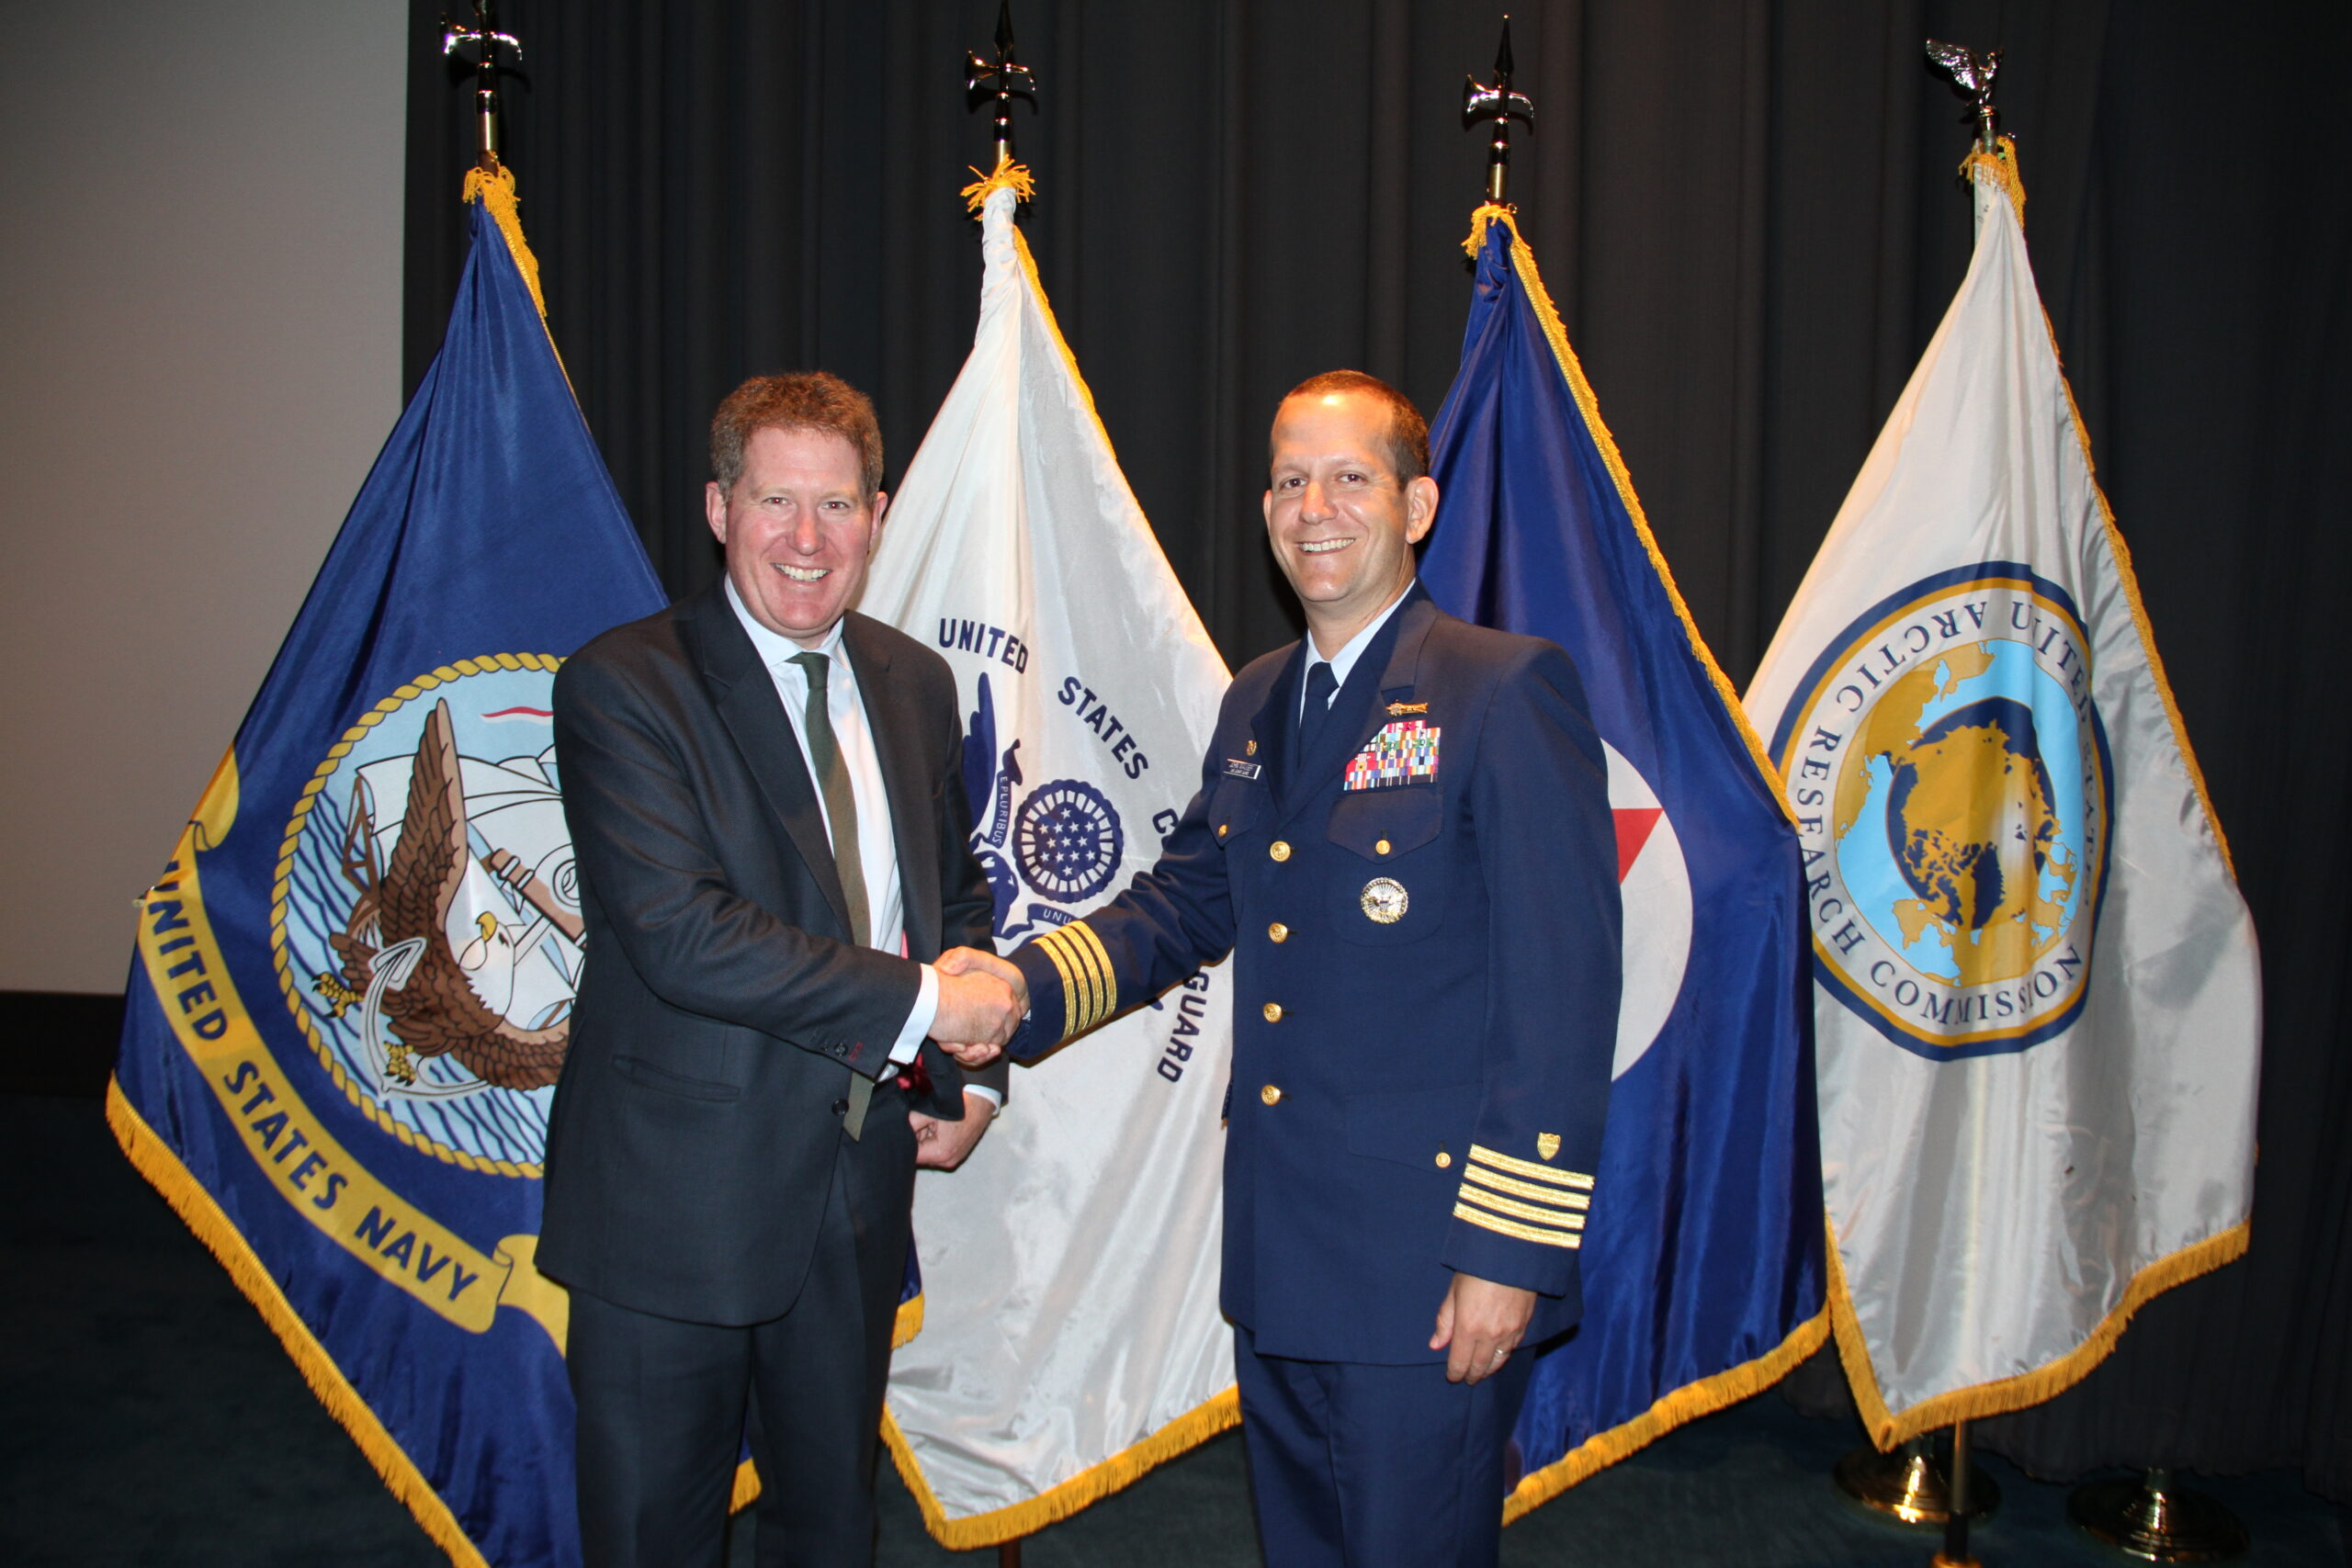 Receiving Challenge Coin Award. Washington D.C May 2015 from Captain John Mauger. Commanding Officer USCG Maritime Safety Centre HQ.